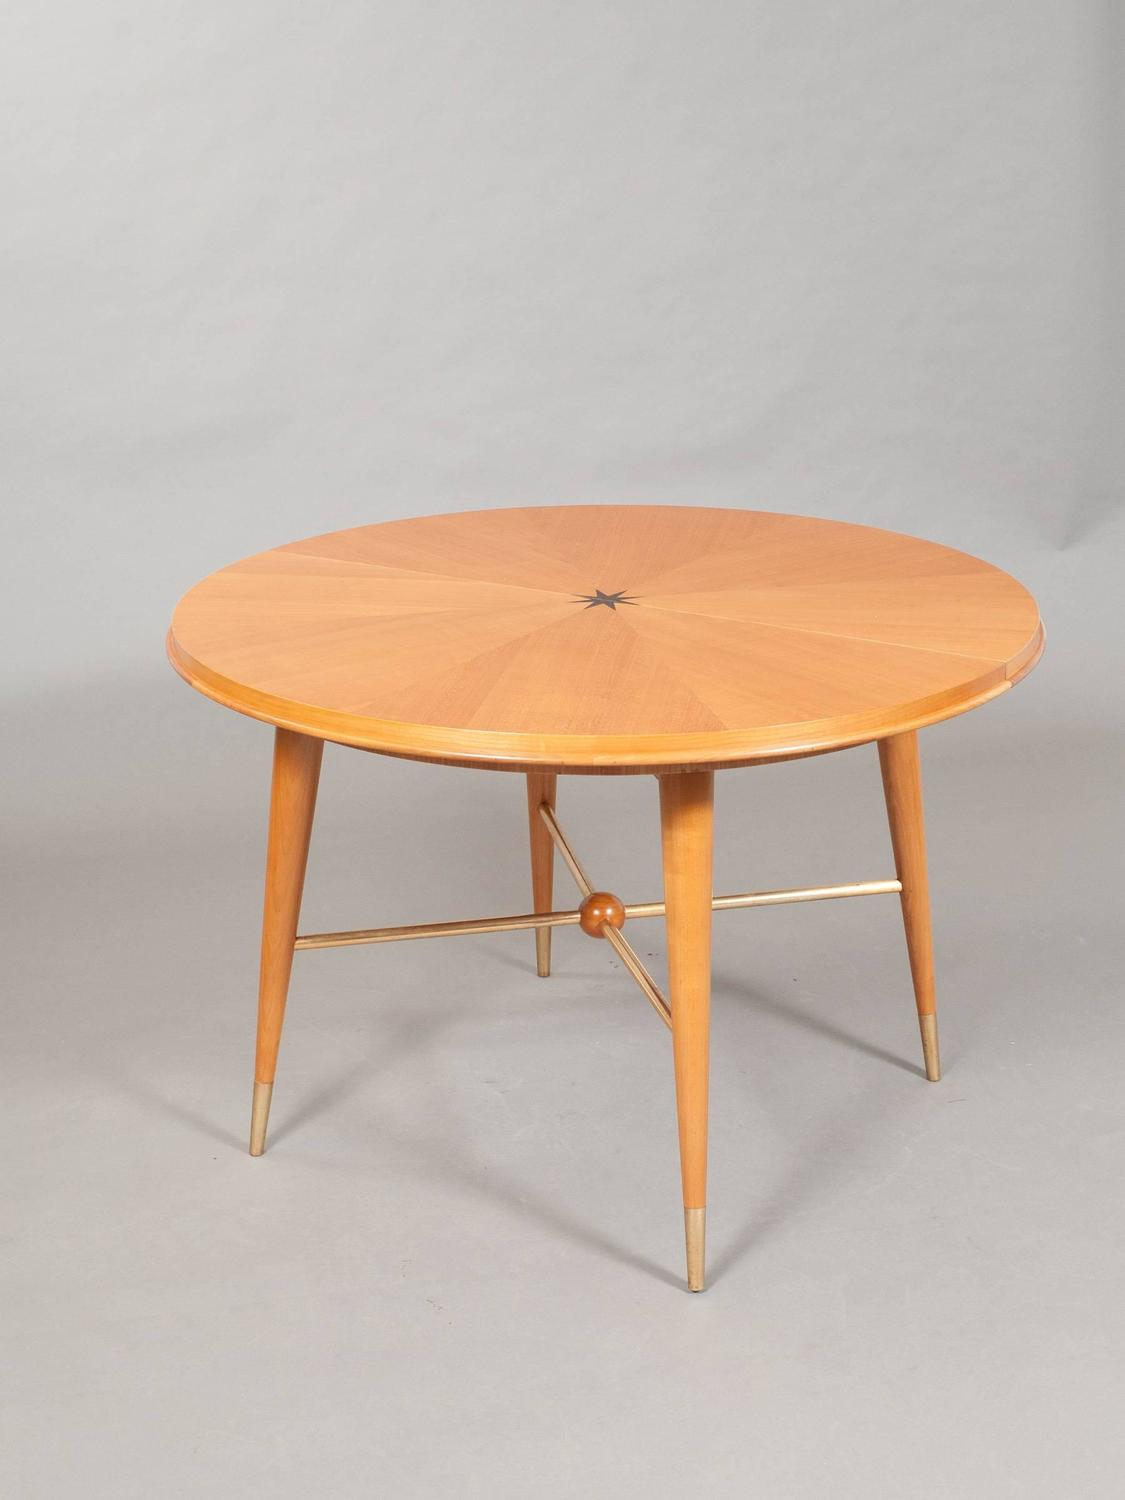 Italian Modern Dining Table For Sale at 1stdibs